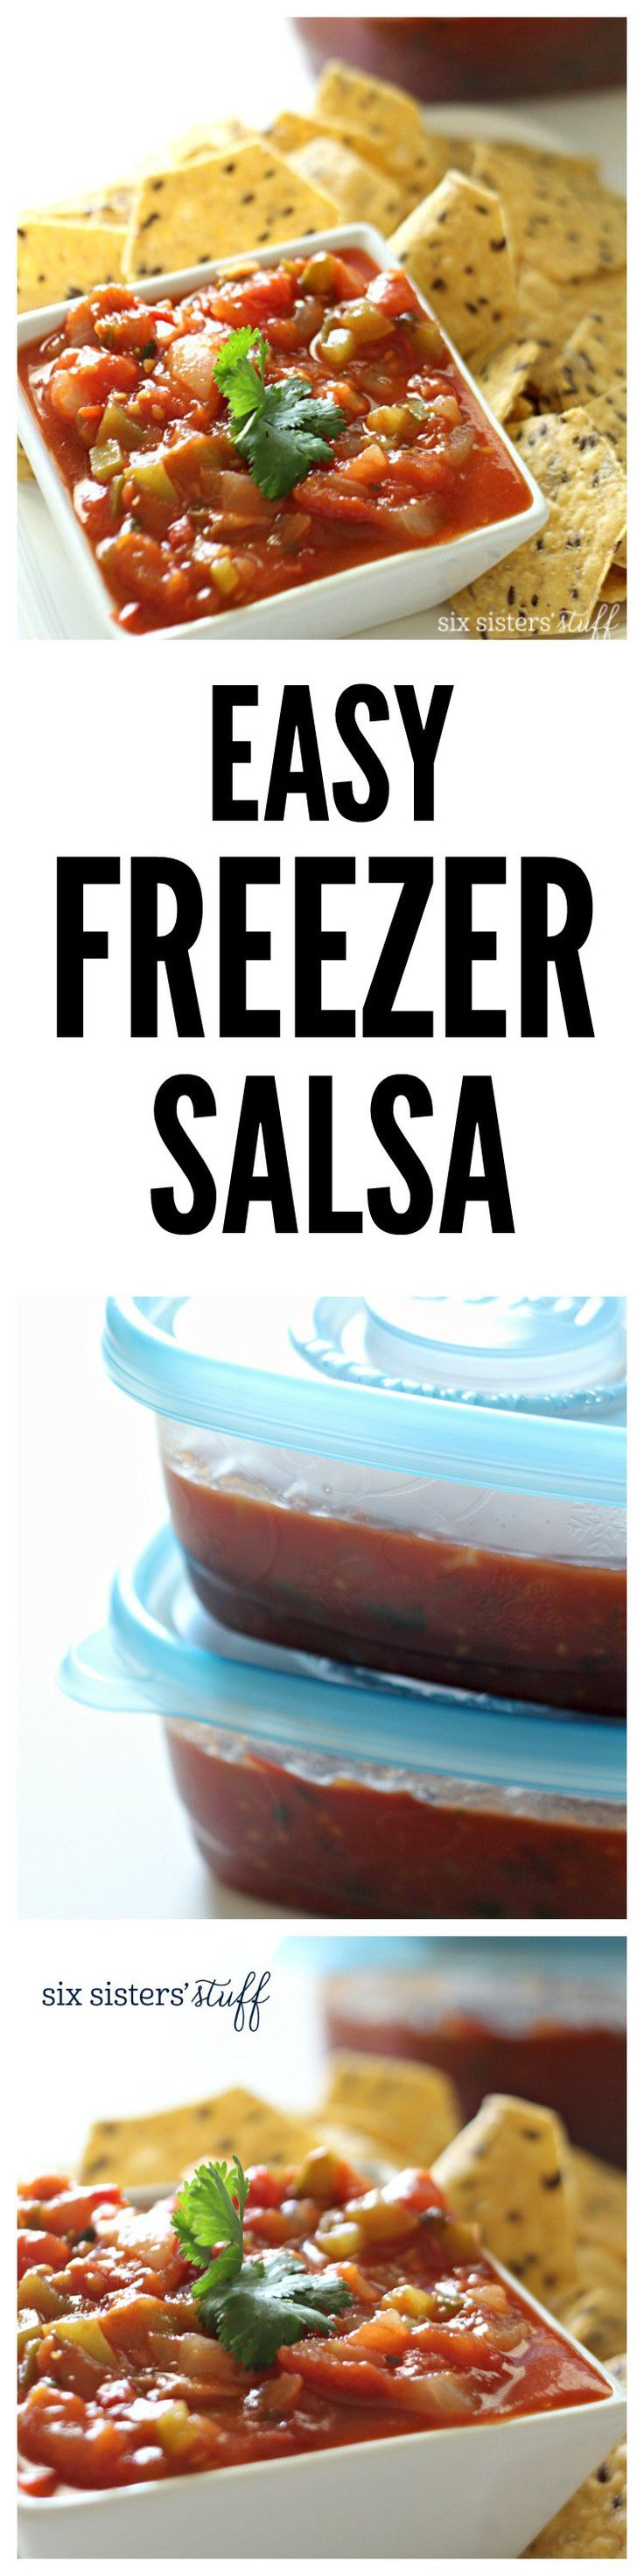 Easy Freezer Salsa on SixSistersStuff.com - takes less than 1 hour!